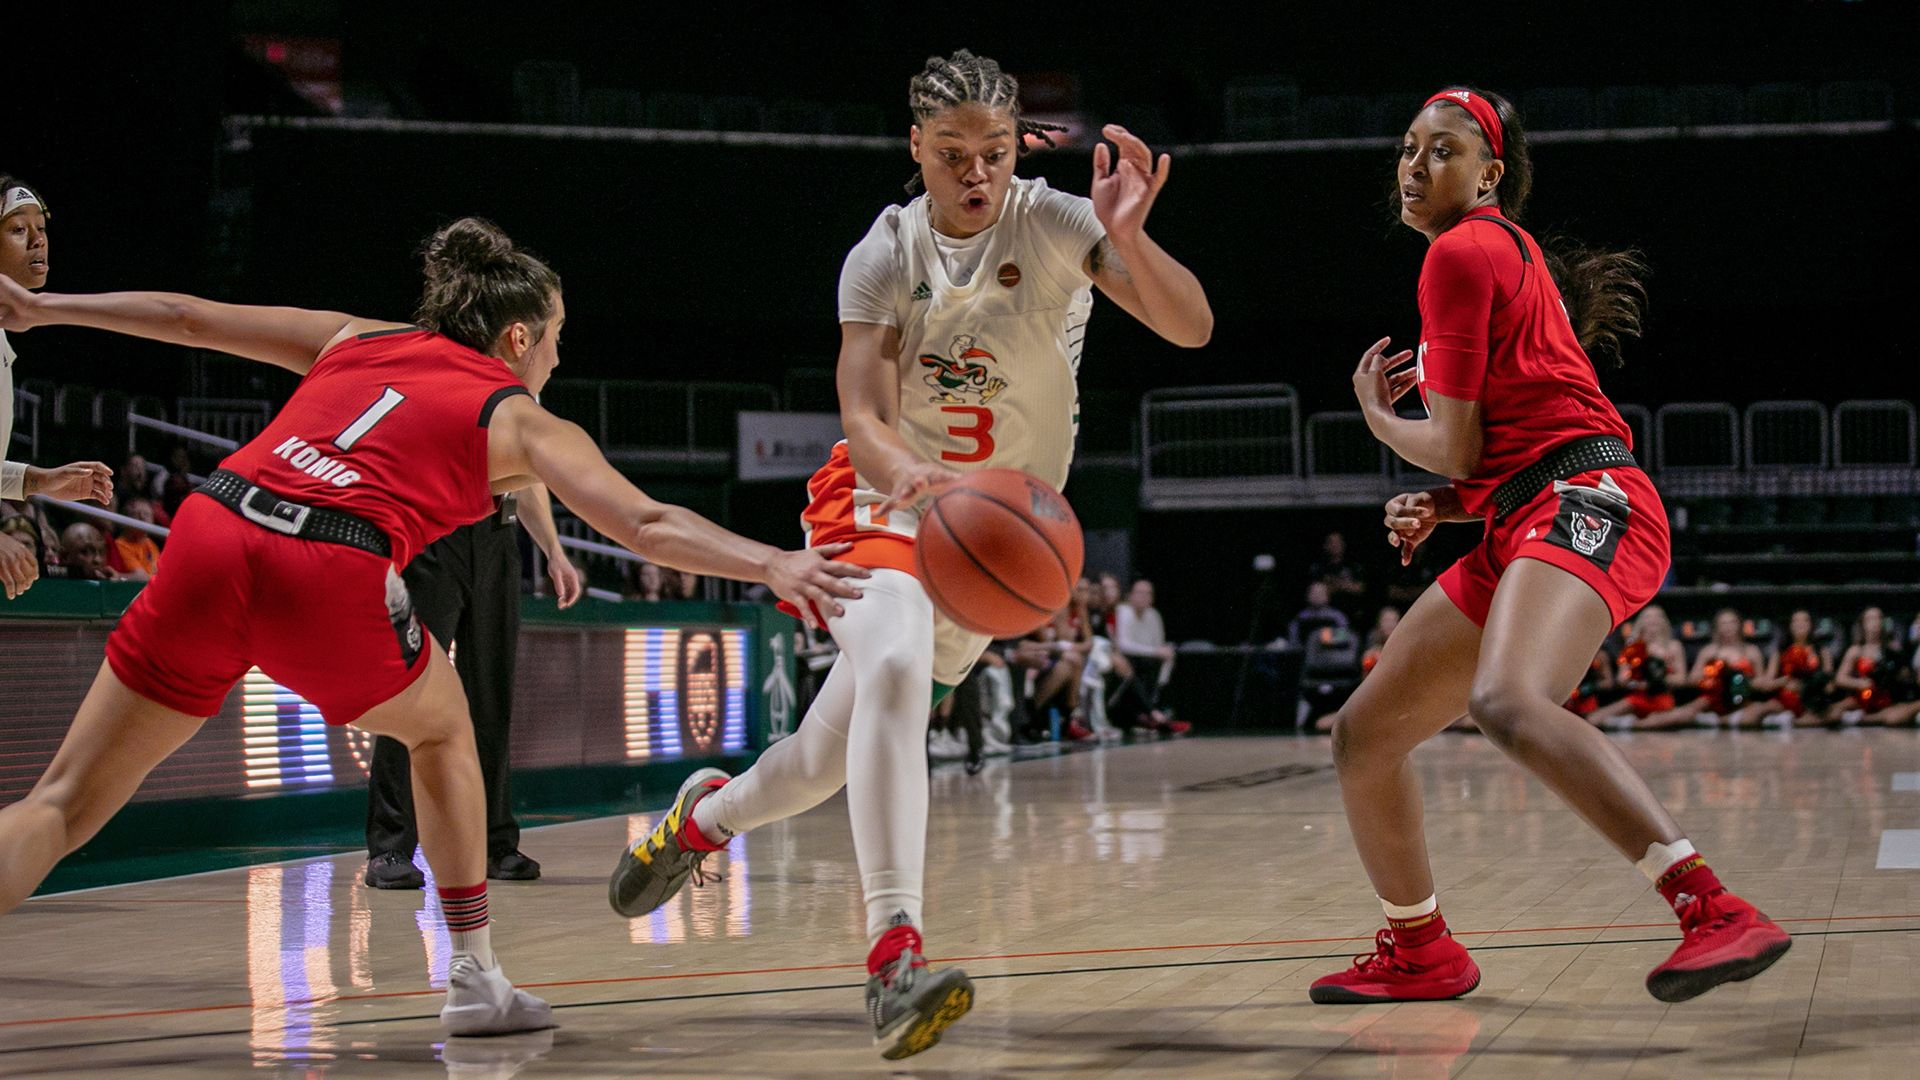 Miami Falls Just Short to No. 10 NC State